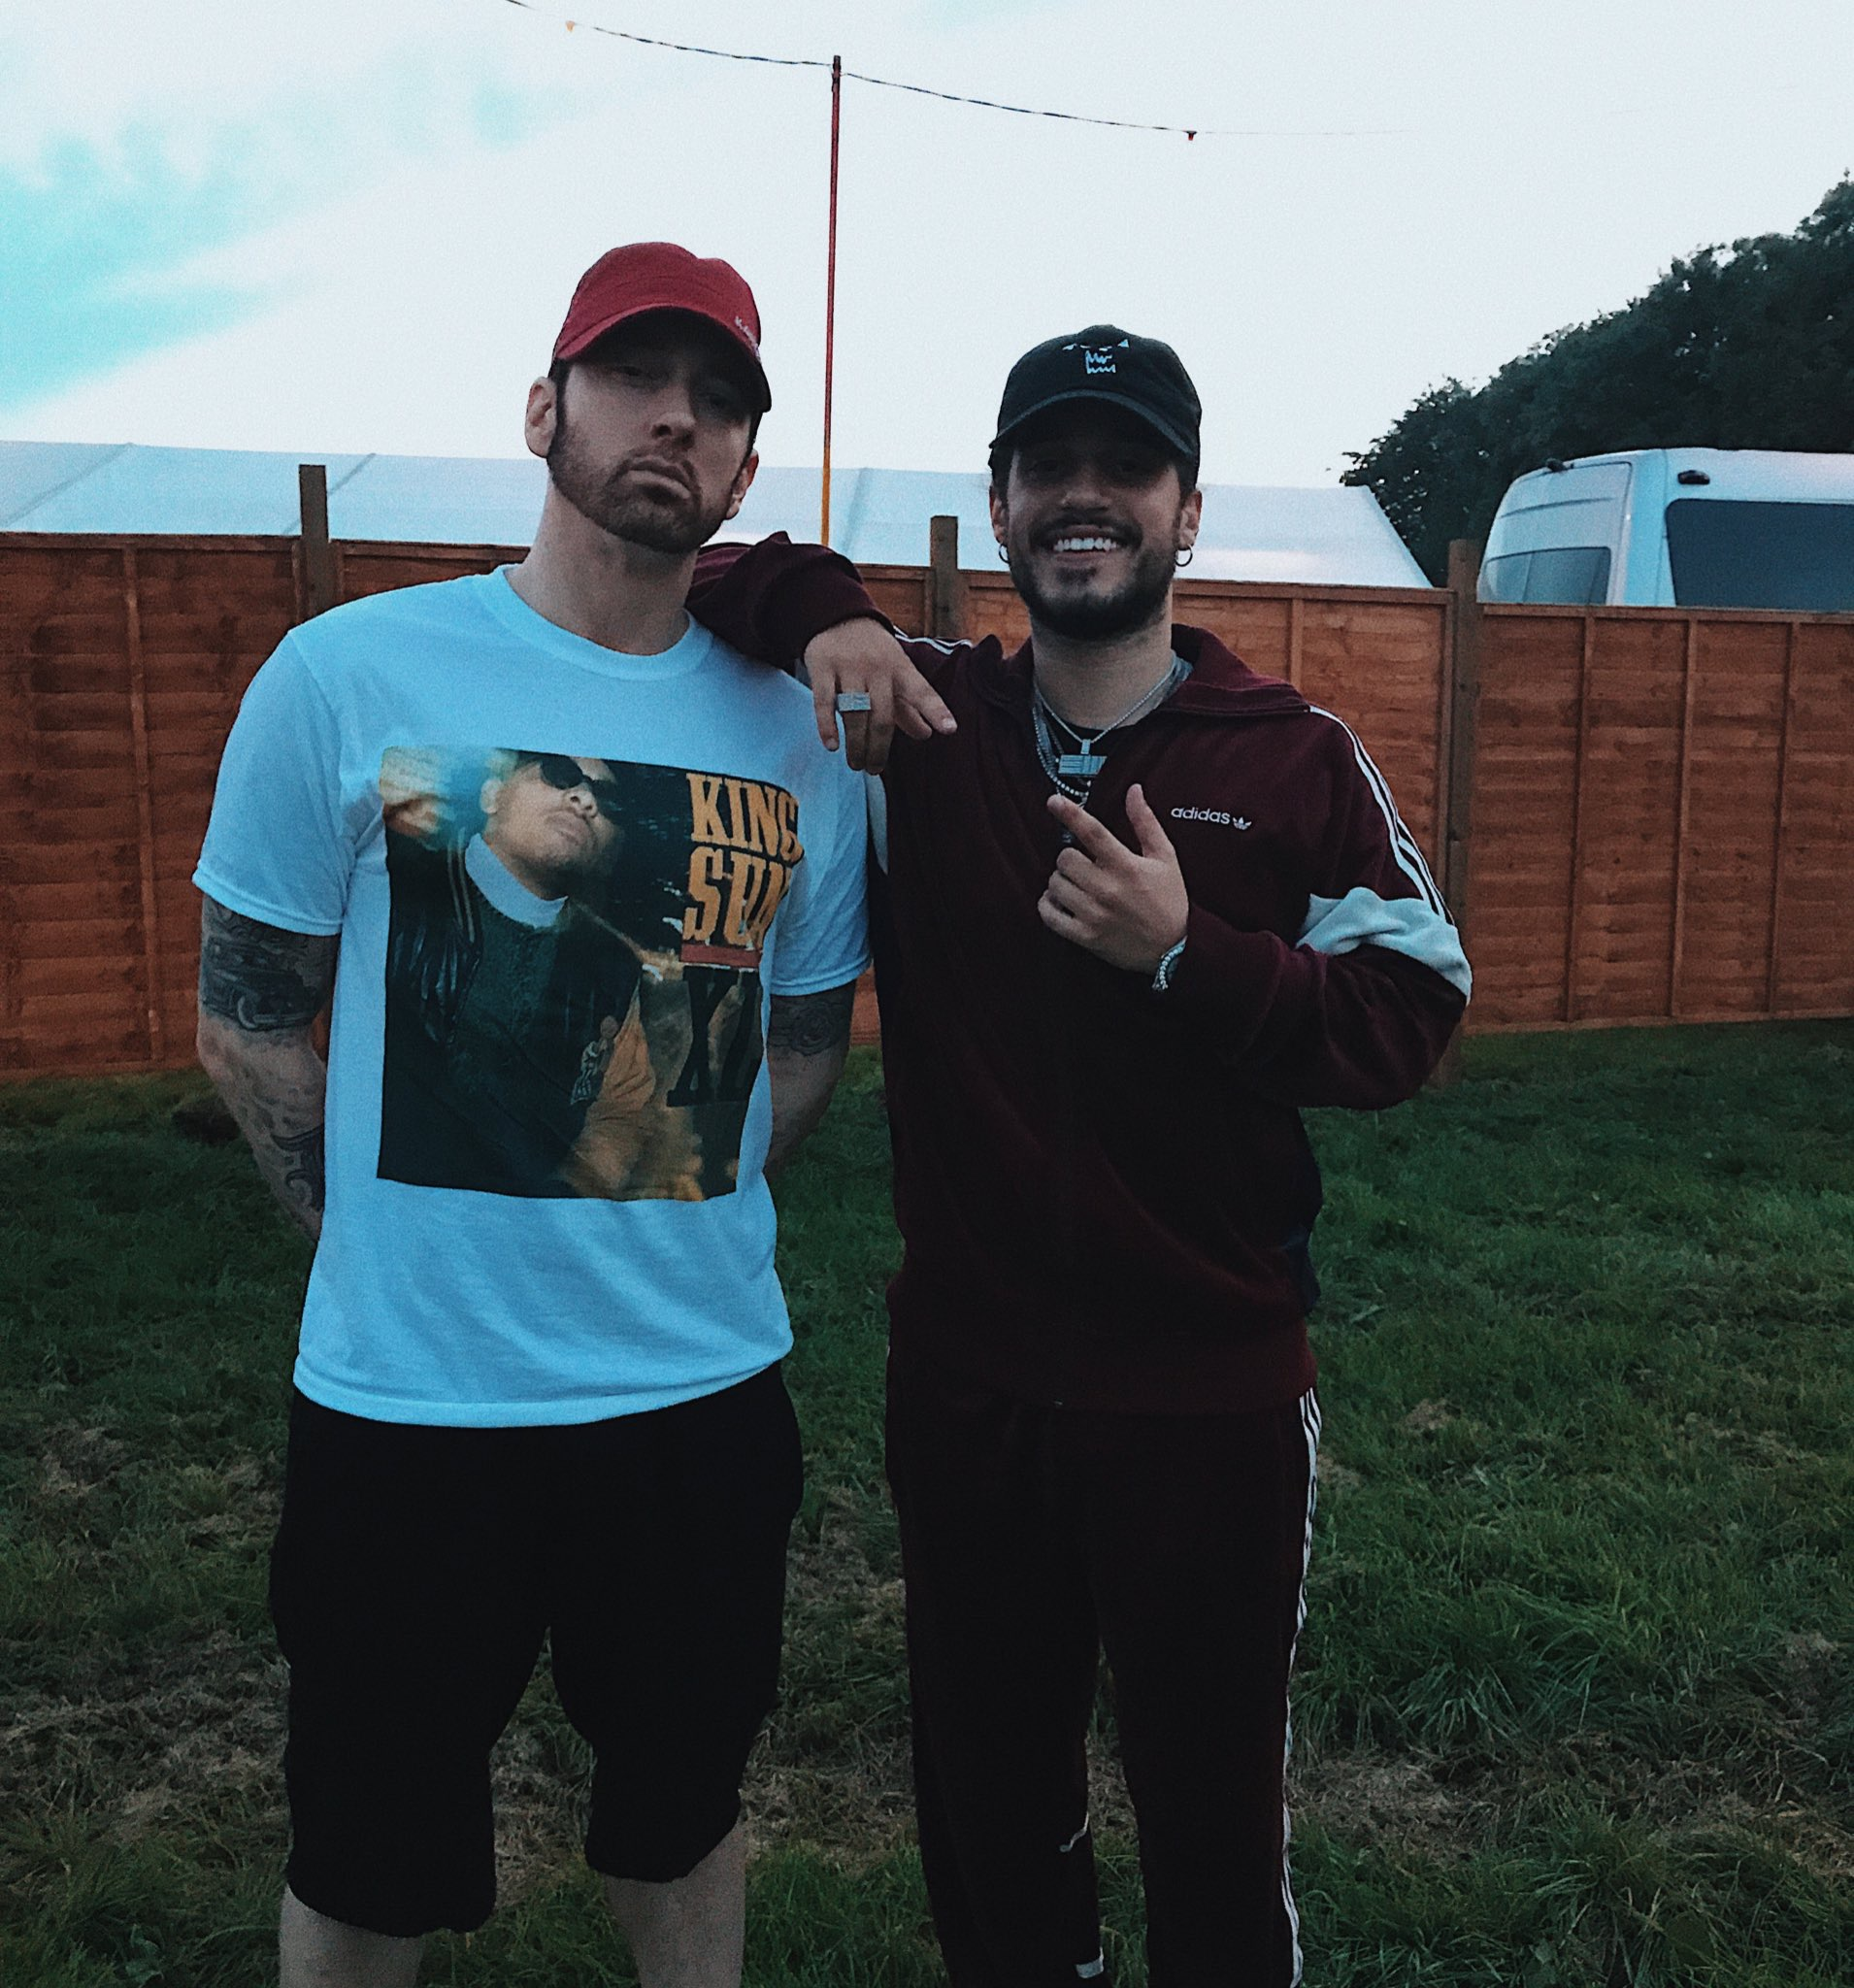 Eminem and Russ